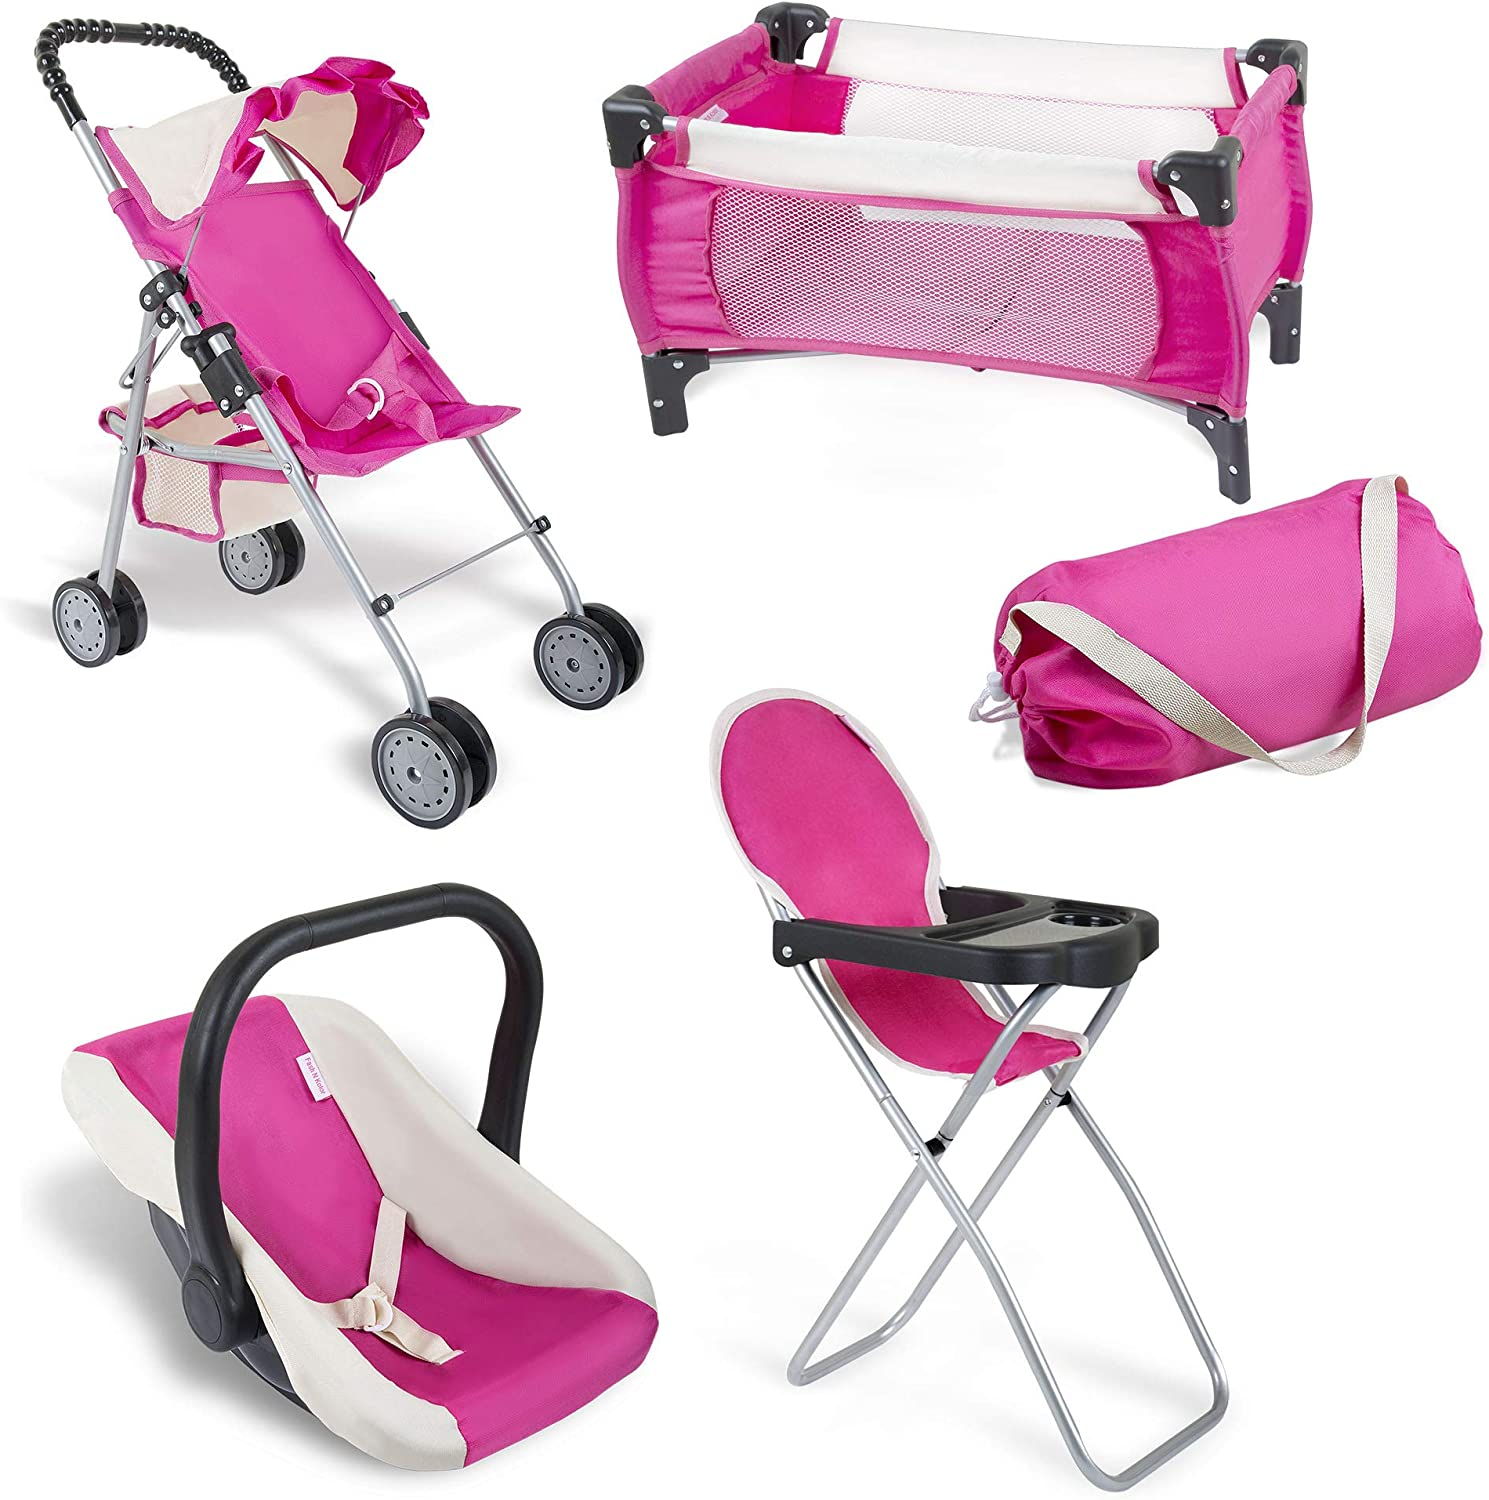 Exquisite Buggy Pink-Cream Doll Set with Pack n Play Carry Bag| 4 in 1 Pink Baby Doll Playing Set for Kids | Doll Stroller, Baby High Chair, Infant Seat, and Baby Doll Pram